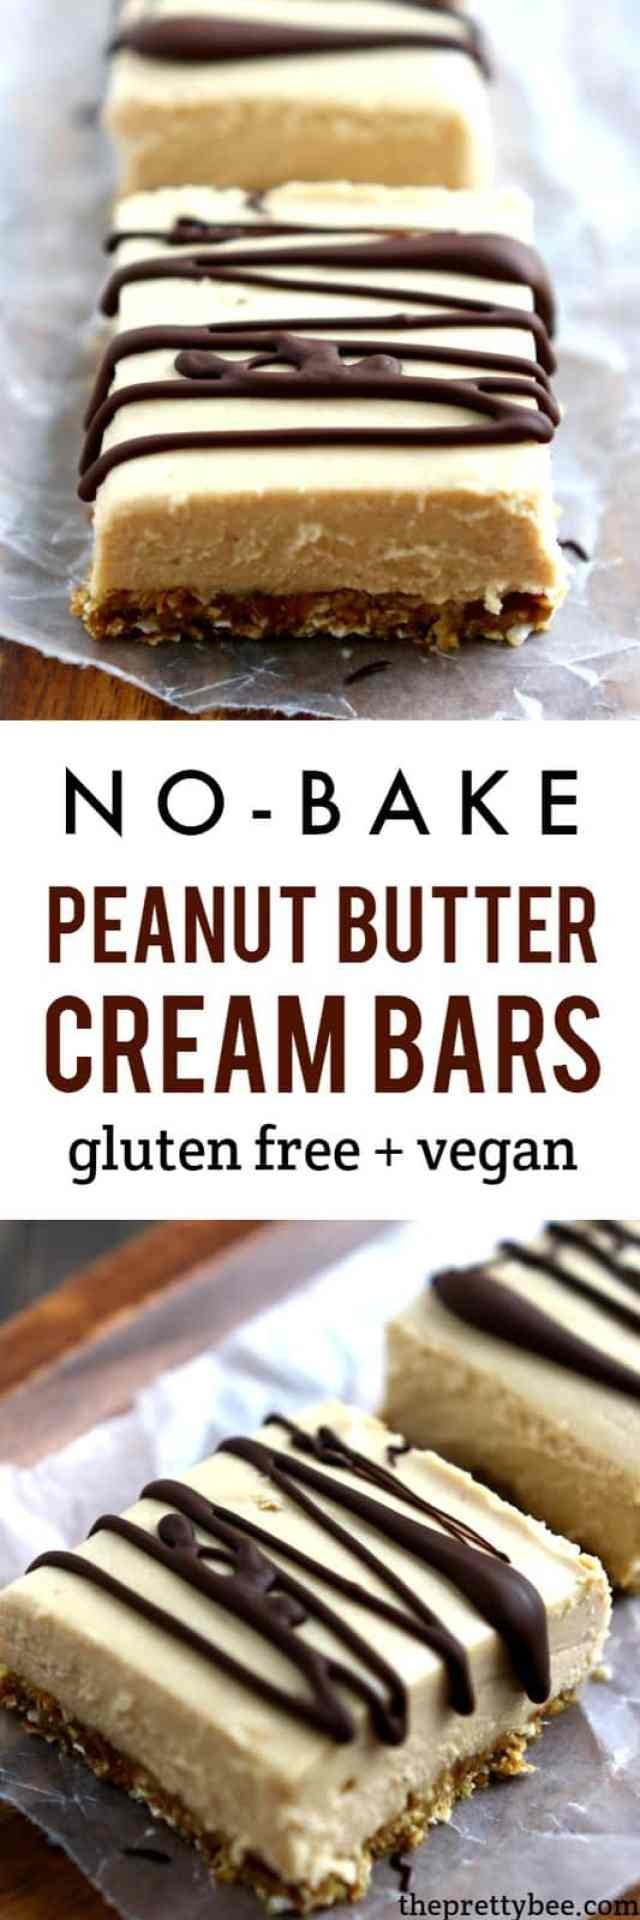 Light and delicious no-bake peanut butter cream bars are a wonderfully decadent dessert!